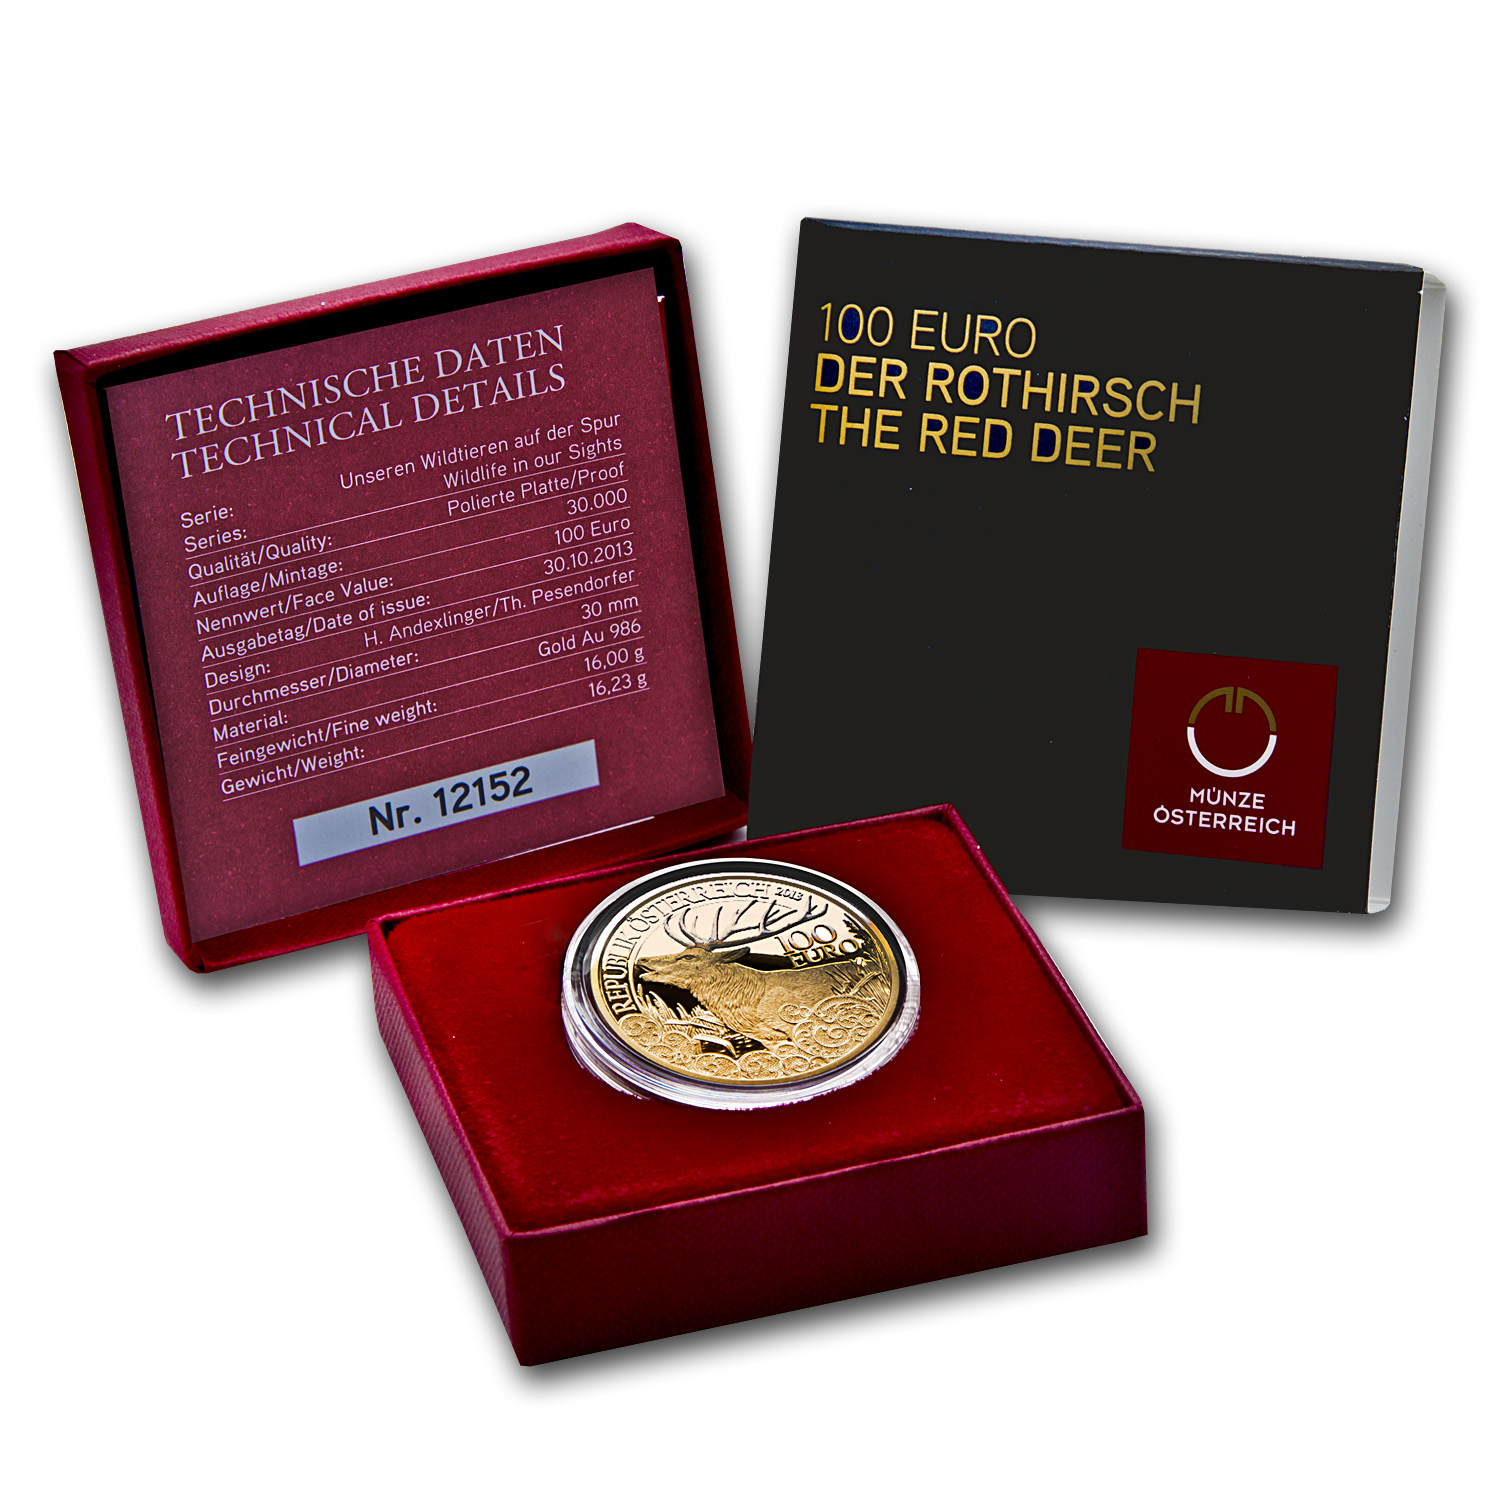 2013 Austria Proof Gold €100 Wildlife in our Sights (Red Deer)